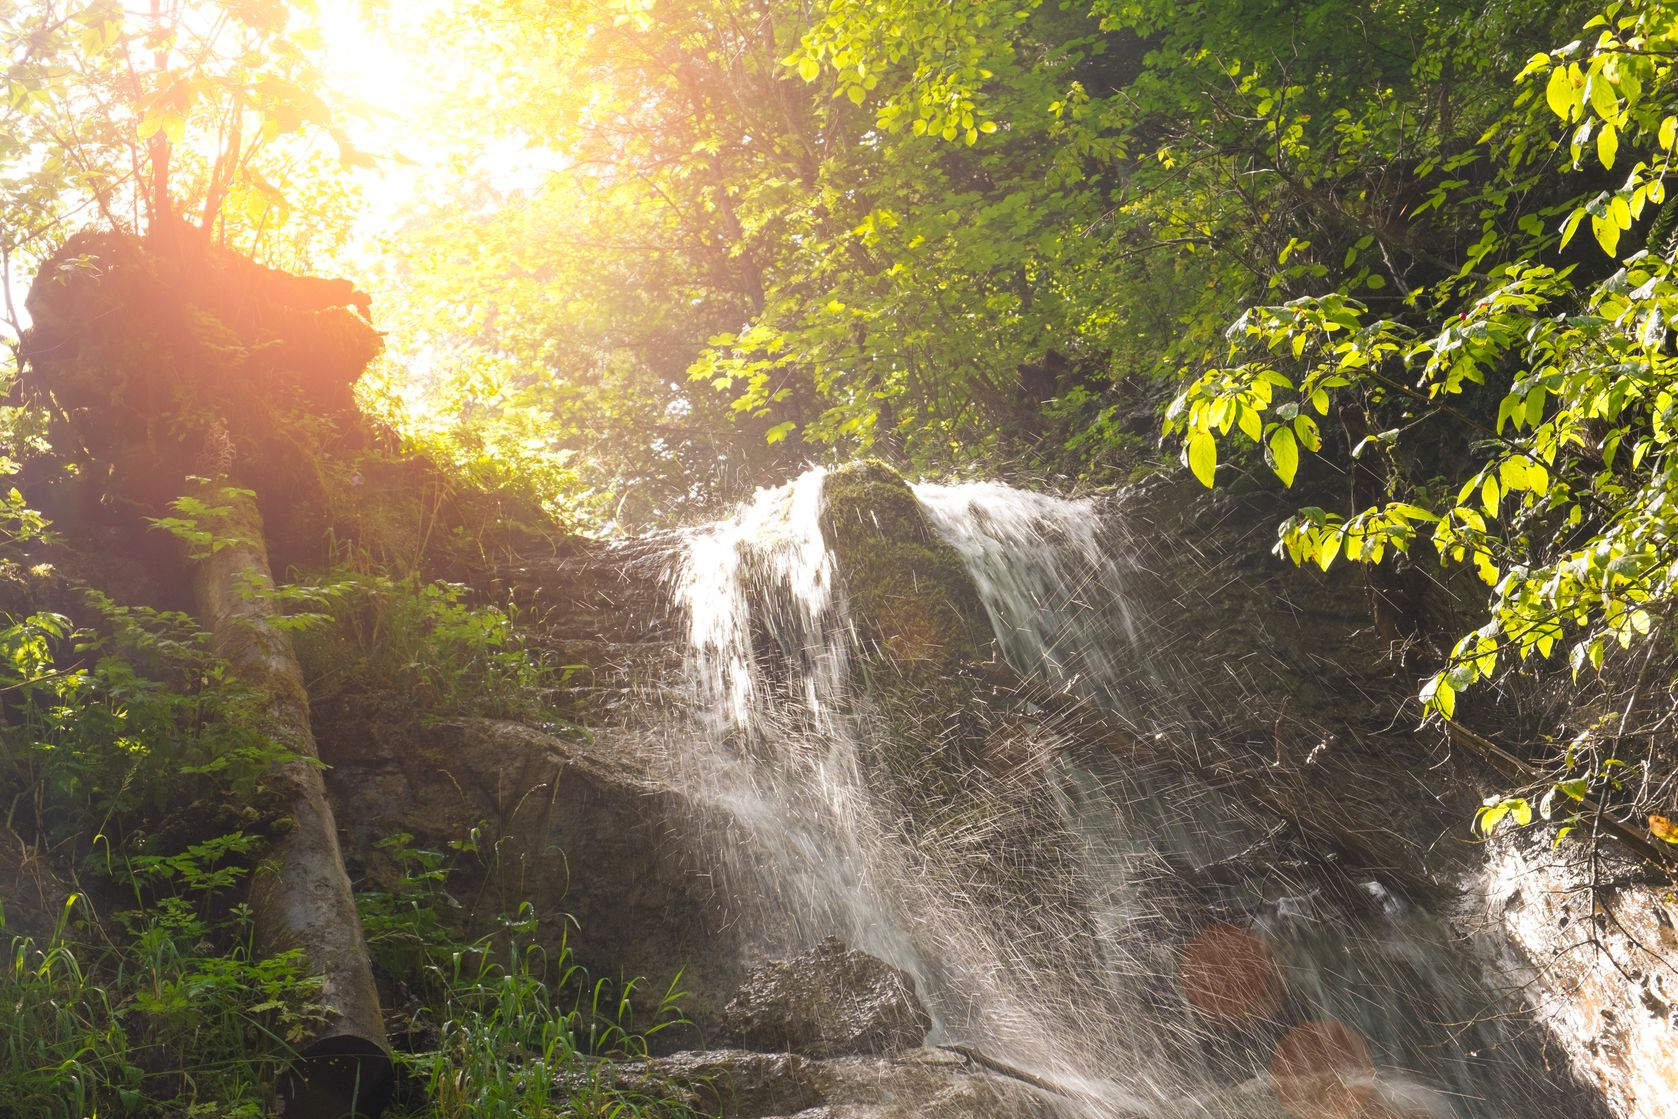 30807103 - waterfall in a forest in slovak paradise, slovakia